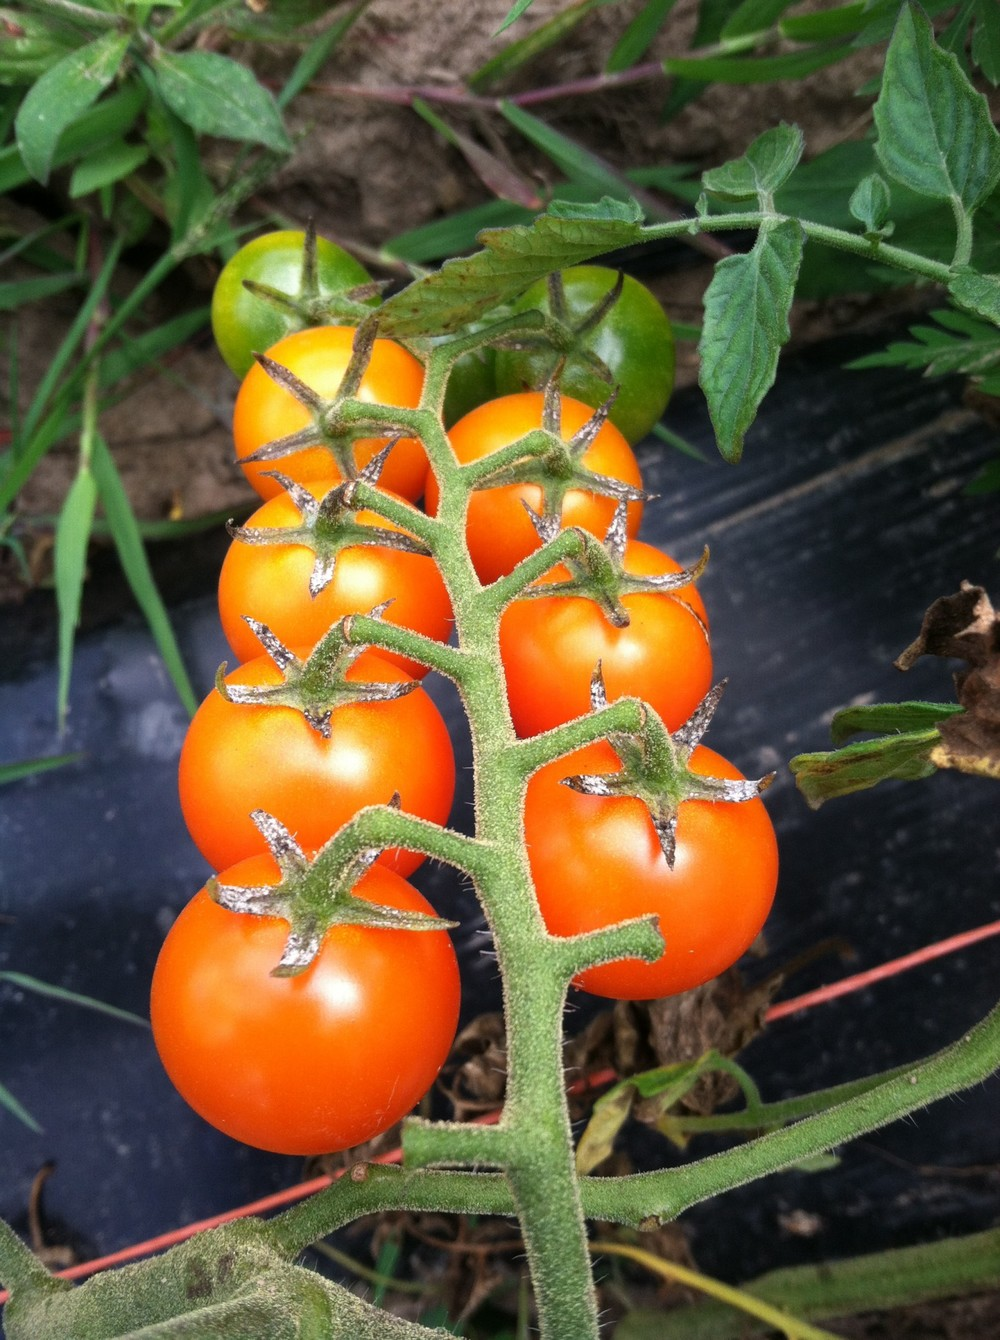 the famous Sungold tomato